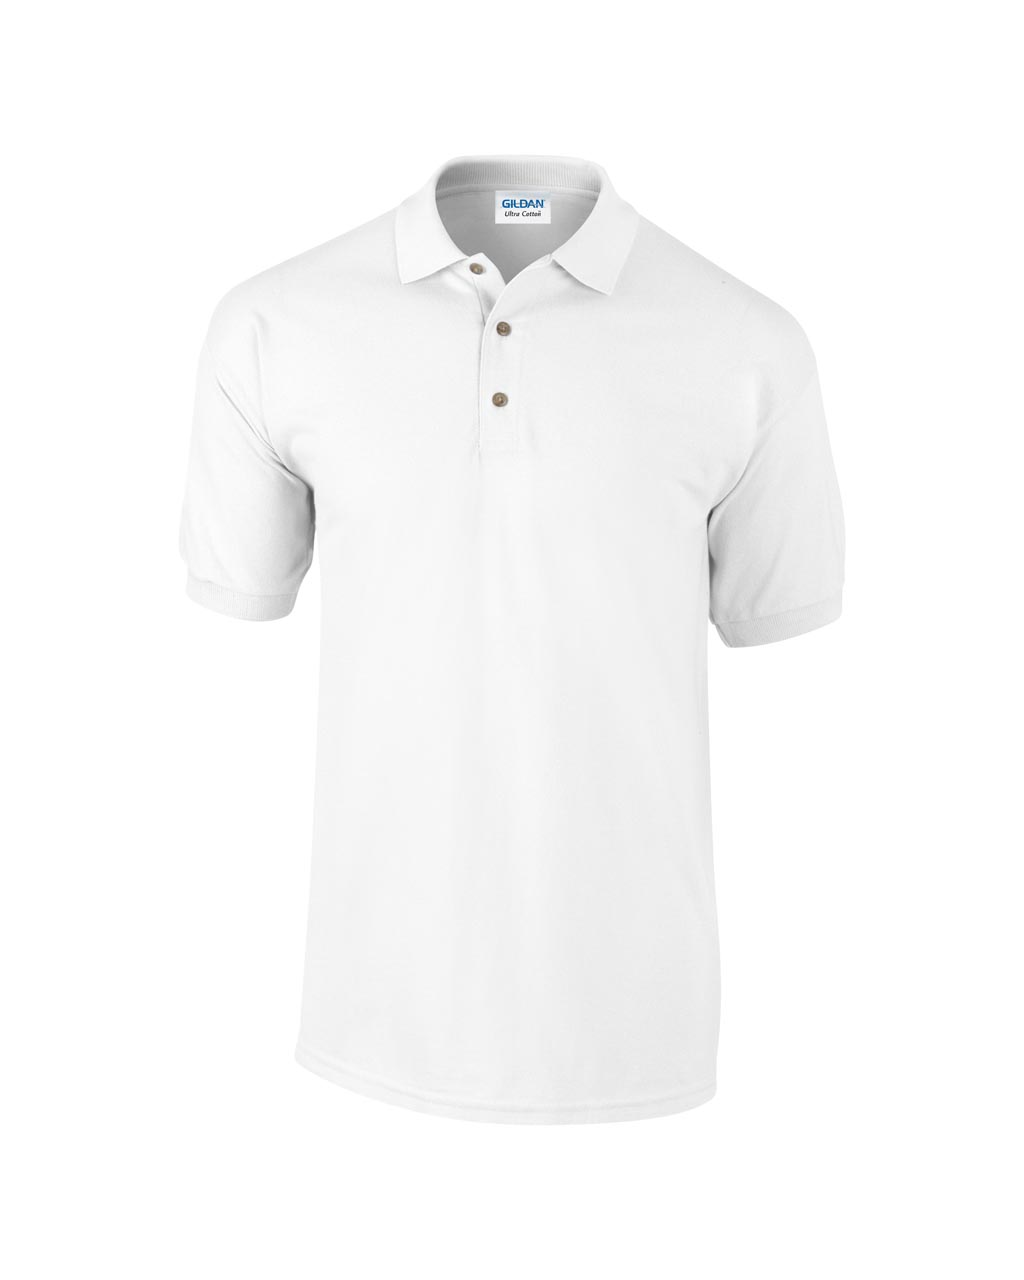 GI3800 / GILDAN PREMIUM COTTON ADULT PIQUE POLO